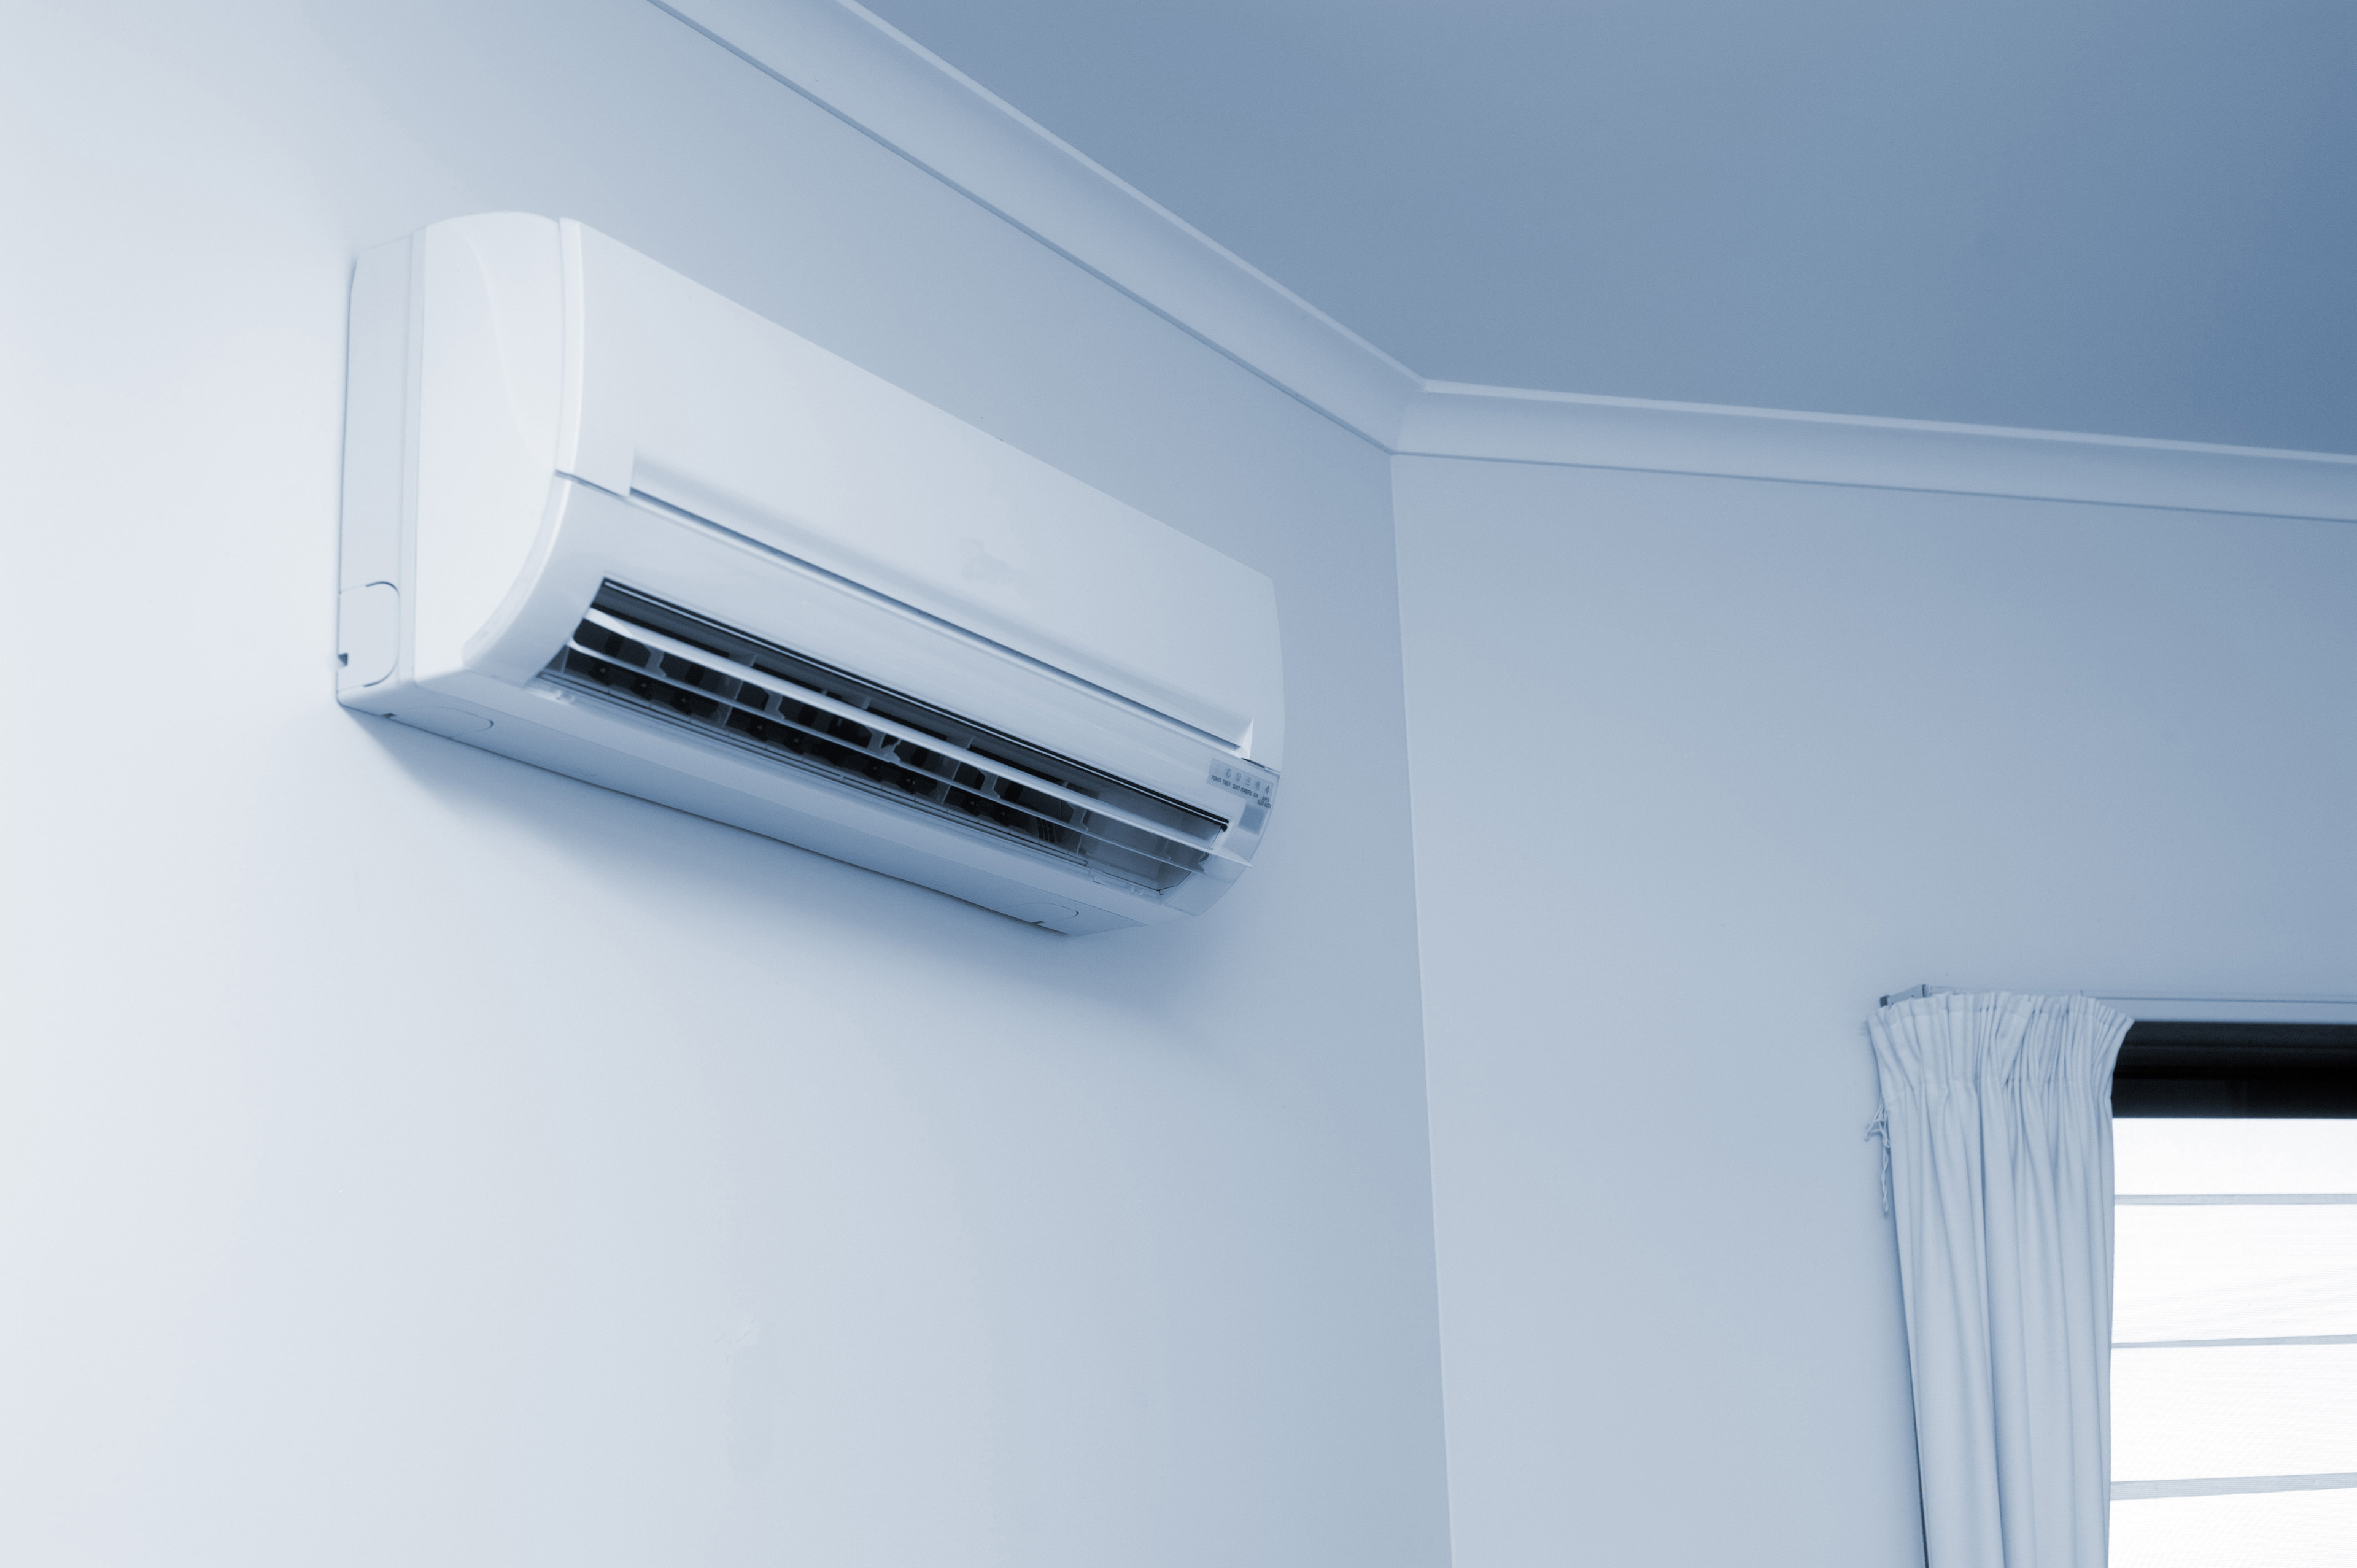 3d Floor Wallpaper Online Image Of Wall Mounted Air Conditioning Unit Freebie